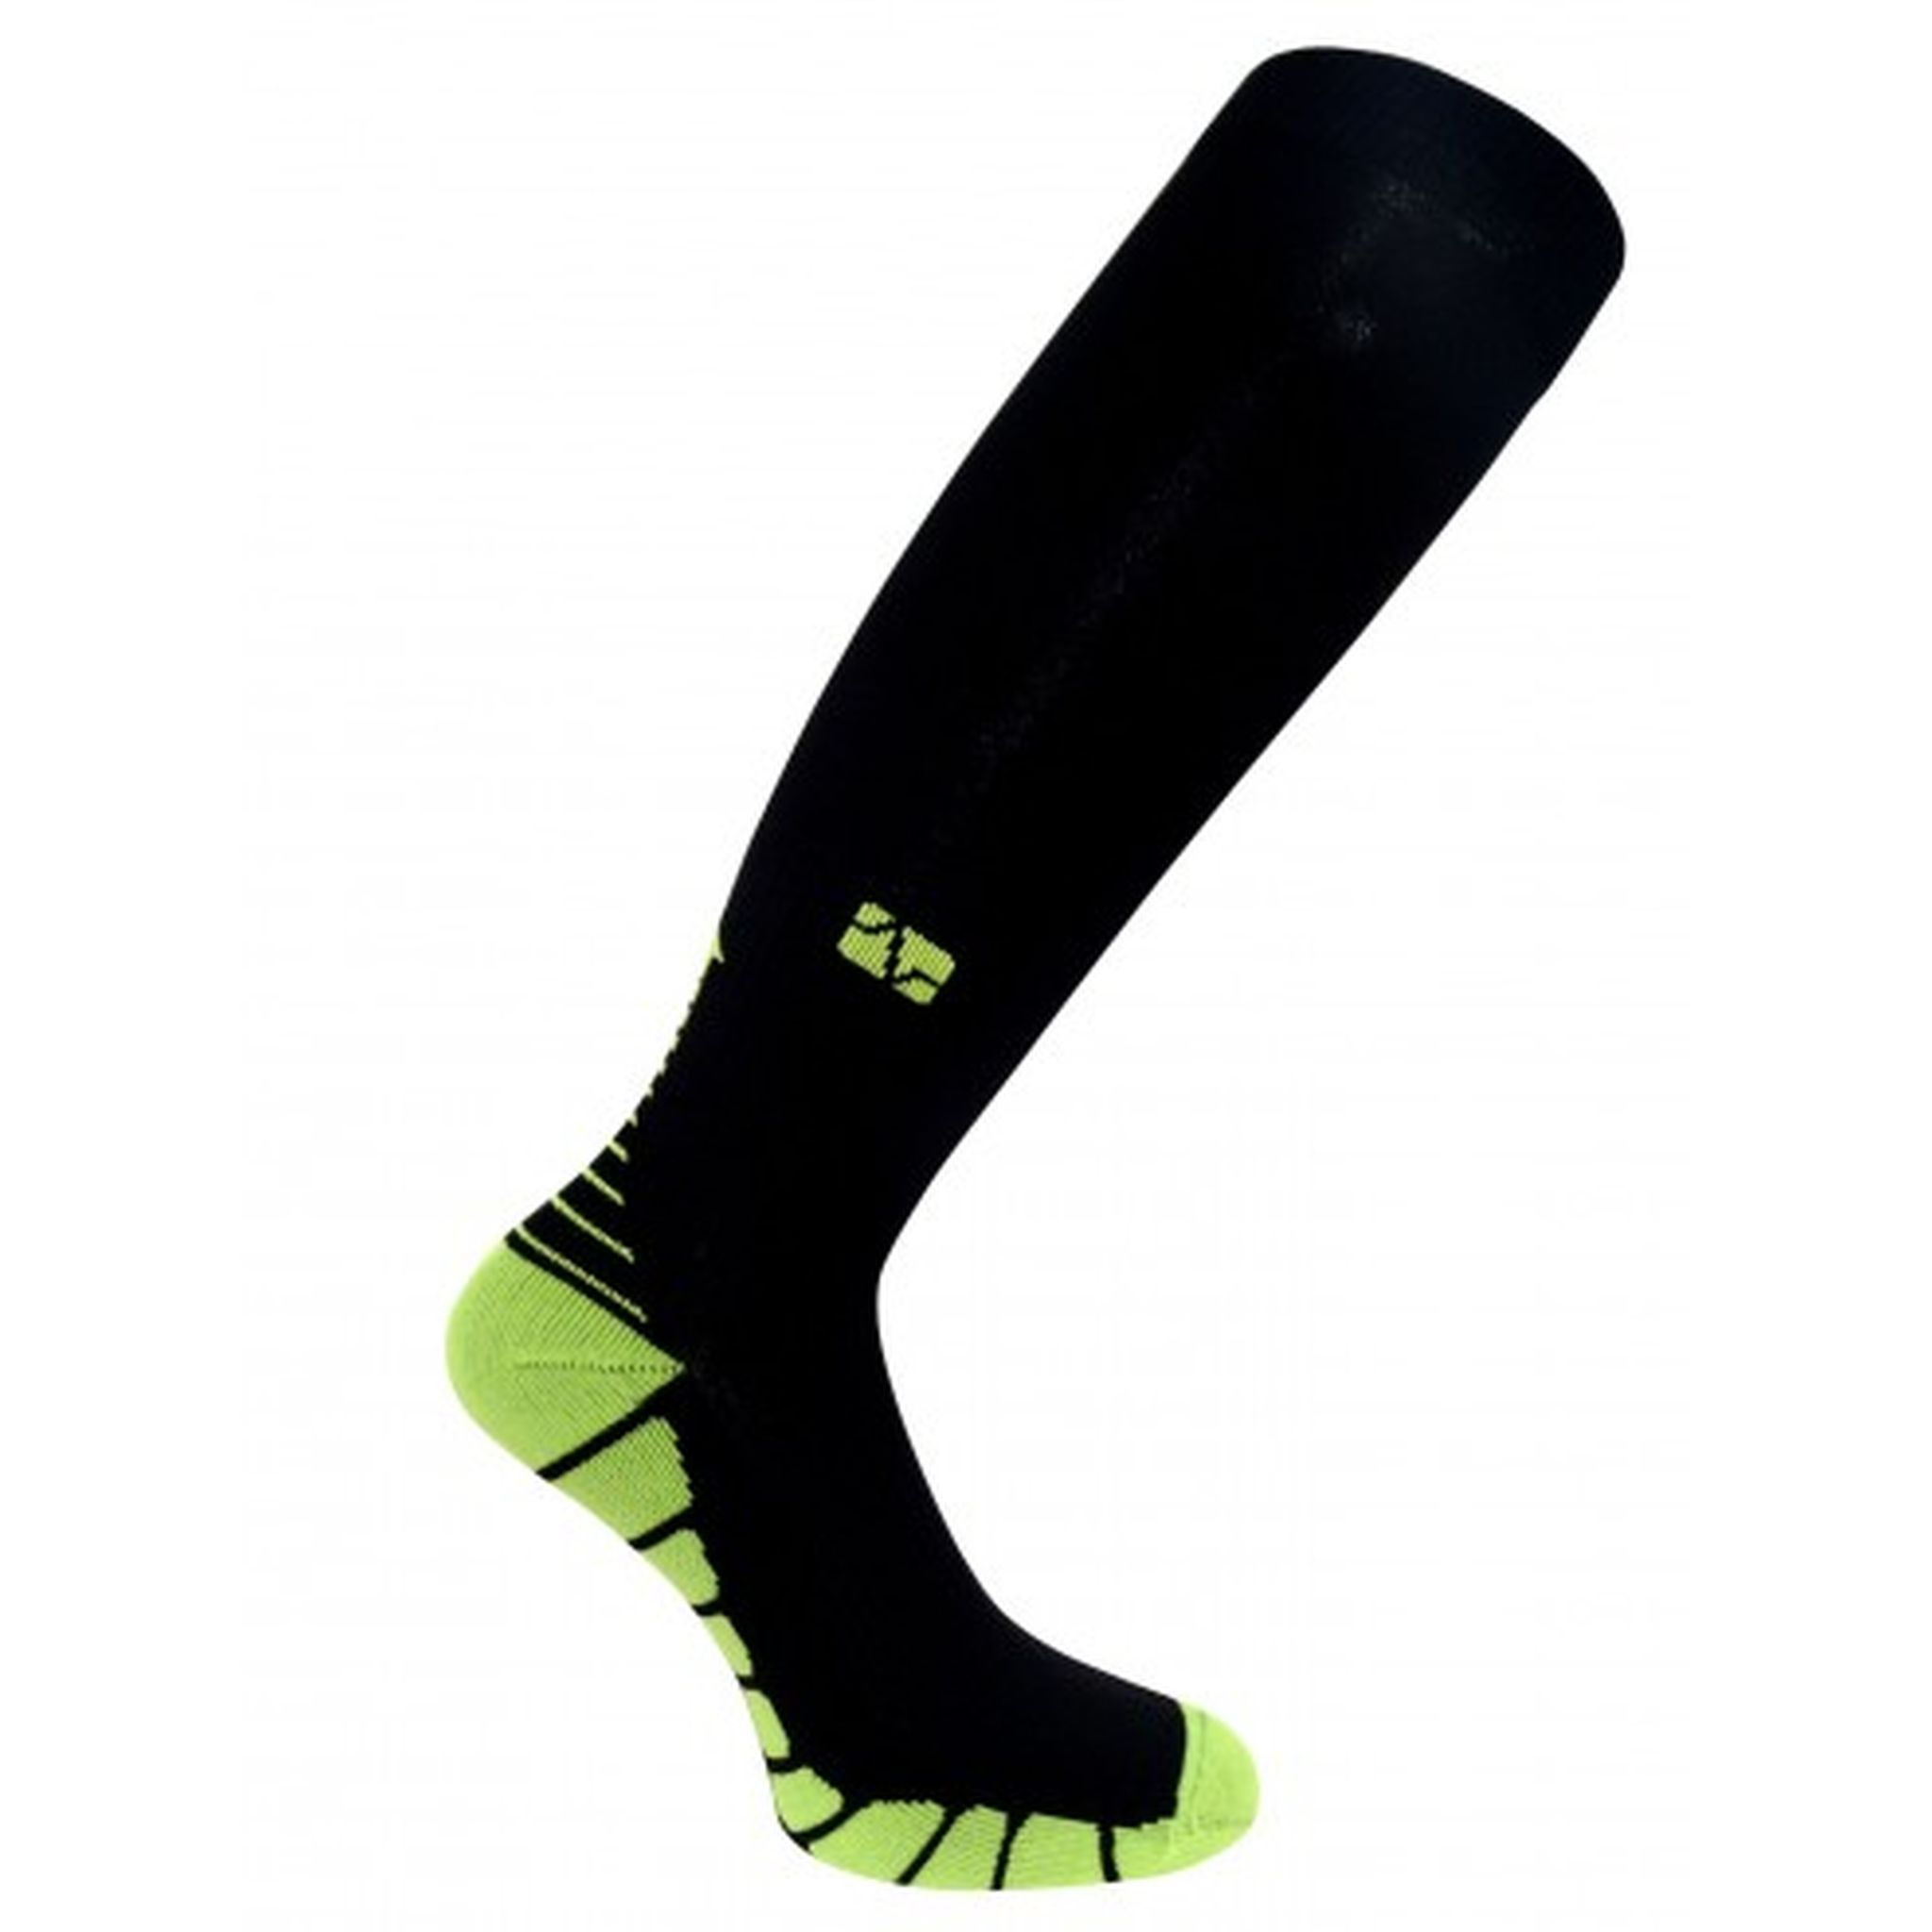 75a6cd00a5 I can easily say that I enjoyed wearing the socks, but I cannot say that  they made by fly through the air like a caped crusader. They did everything  they ...